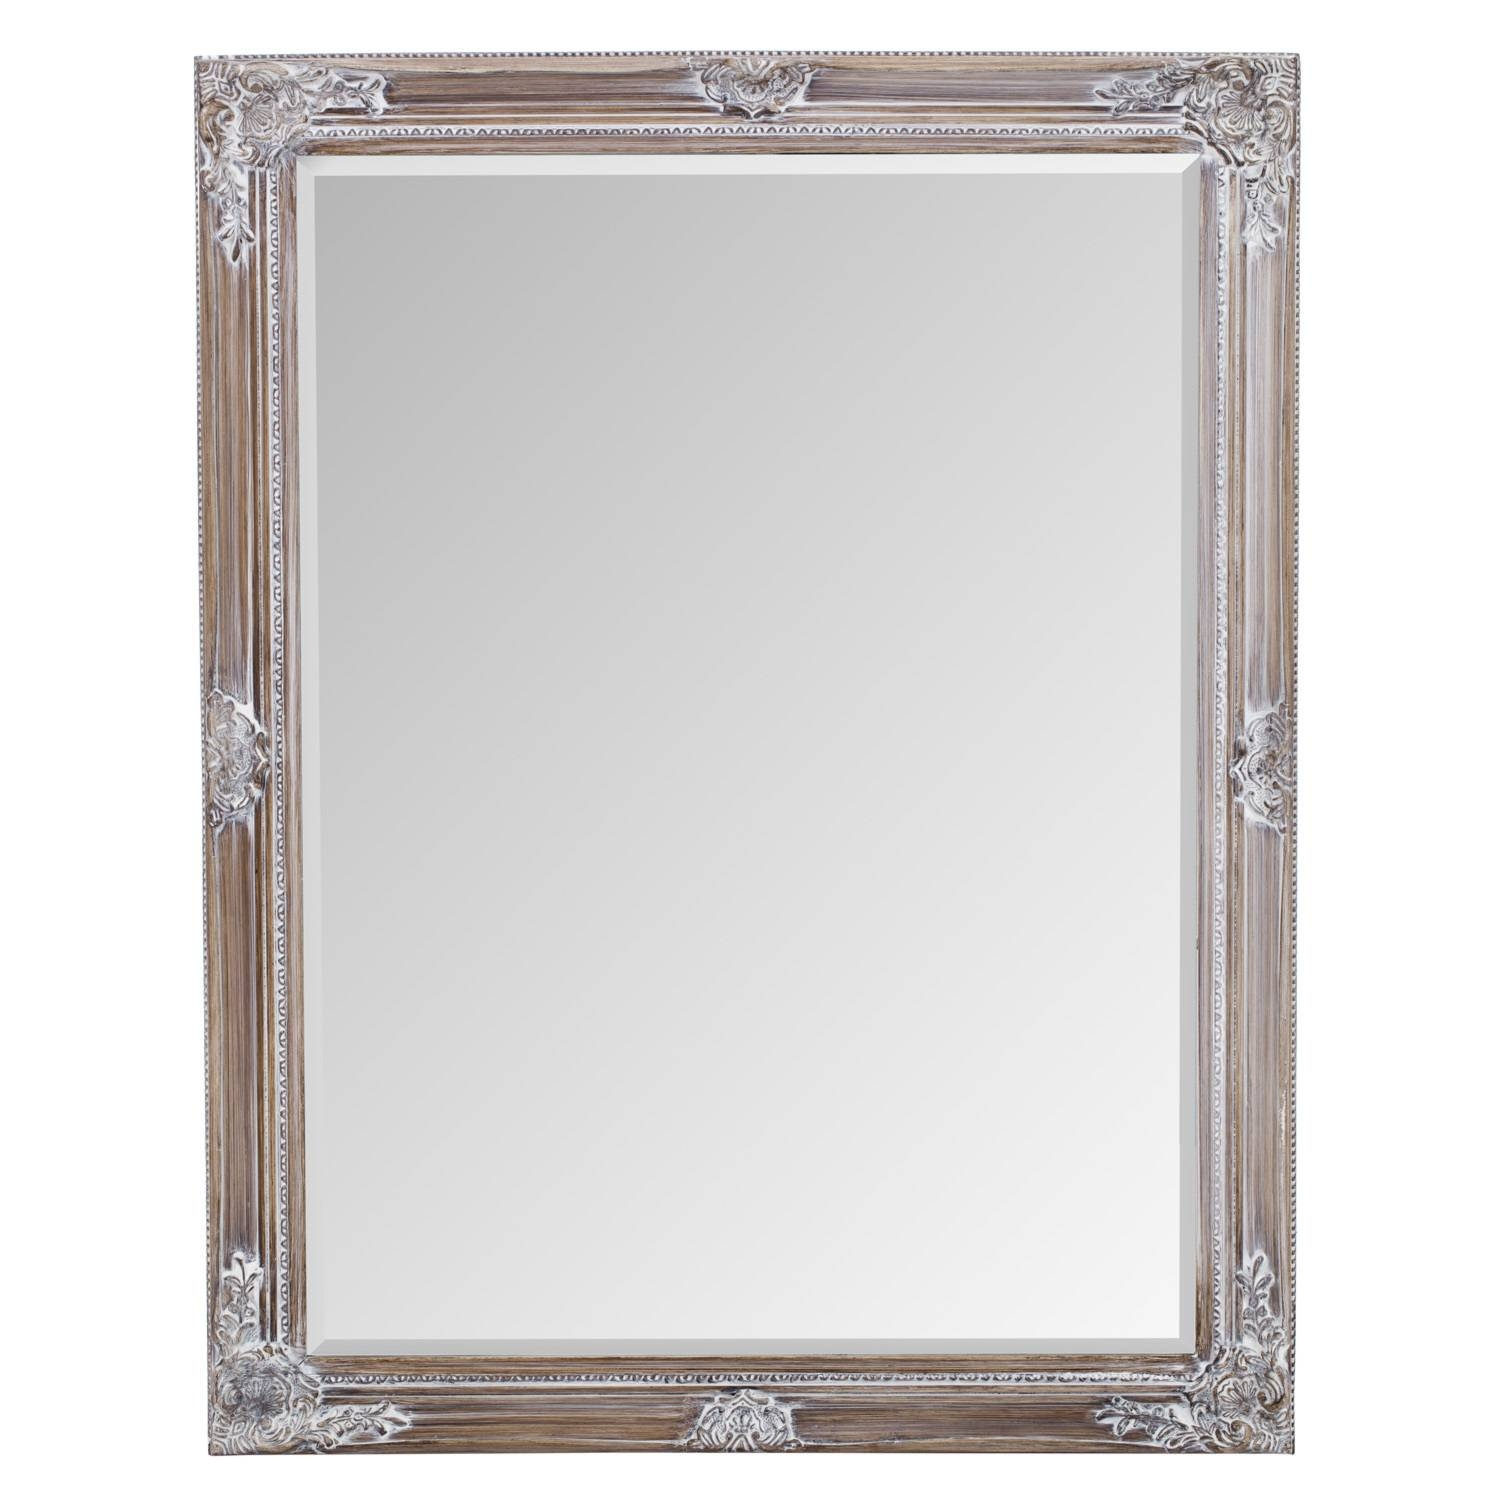 Champagne Lean To Mirror throughout Antique Ornate Mirrors (Image 12 of 25)